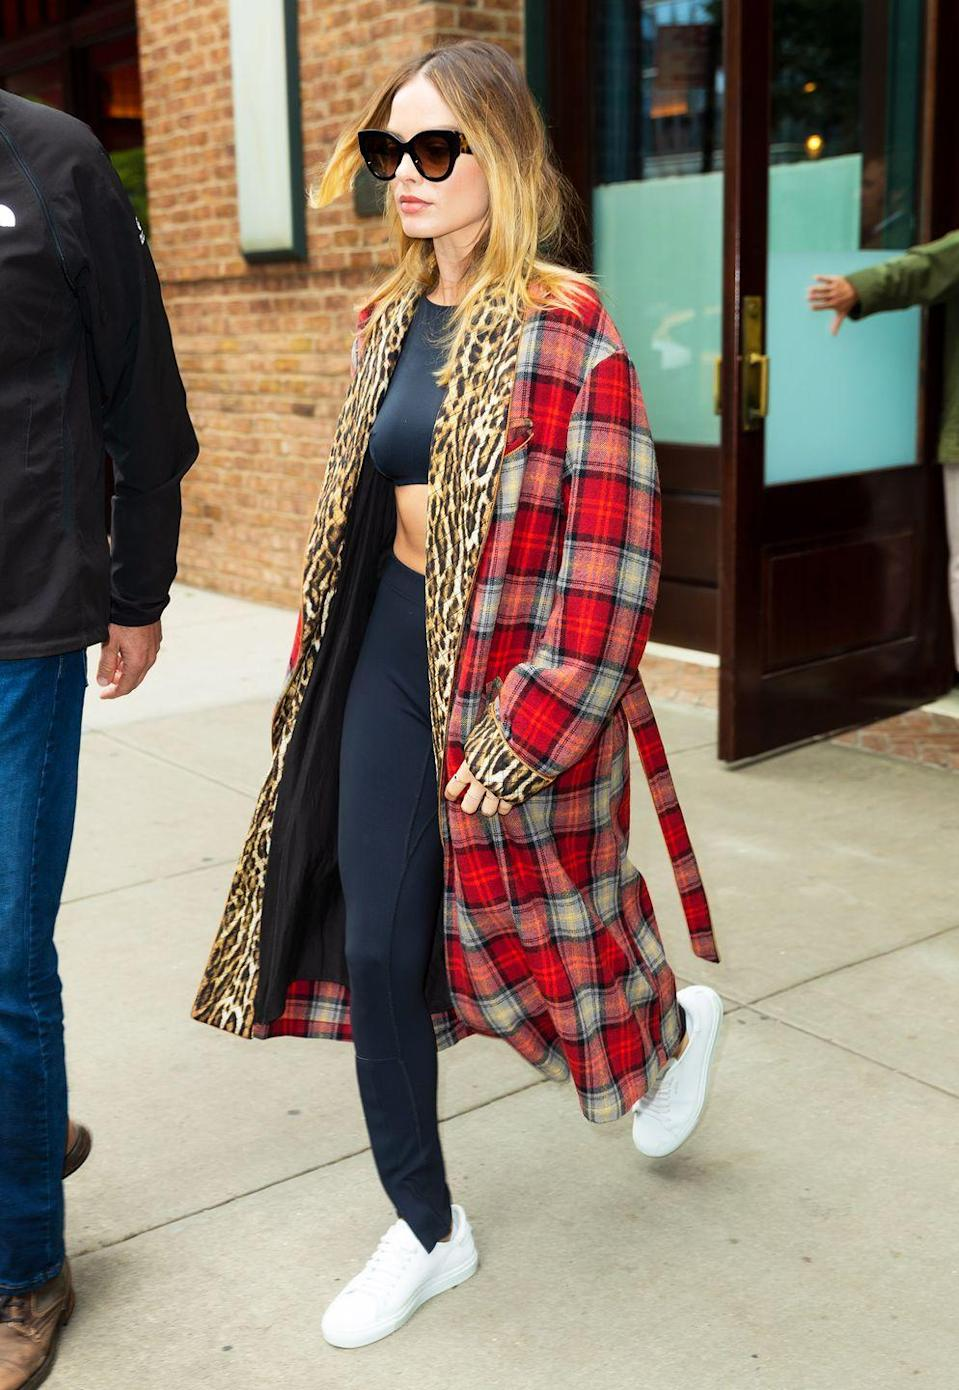 """<p>The actress delivered a masterclass in how to clash prints with this R13 checked coat, with an leopard print lining, in New York. Margot kept the rest of her look nice and simple - with a black crop top, leggings and white trainers - to keep the attention firmly on the coat.</p><p><strong>Get the look: </strong></p><p><a class=""""link rapid-noclick-resp"""" href=""""https://go.redirectingat.com?id=127X1599956&url=https%3A%2F%2Fwww.net-a-porter.com%2Fgb%2Fen%2Fproduct%2F1181971&sref=https%3A%2F%2Fwww.elle.com%2Fuk%2Ffashion%2Fcelebrity-style%2Fg30889%2Fmargot-robbie-best-looks-style-in-pictures%2F"""" rel=""""nofollow noopener"""" target=""""_blank"""" data-ylk=""""slk:SHOP NOW"""">SHOP NOW</a> R13 Leopard-print crepe-trimmed checked wool-blend coat, £1,335, Net-A-Porter</p>"""